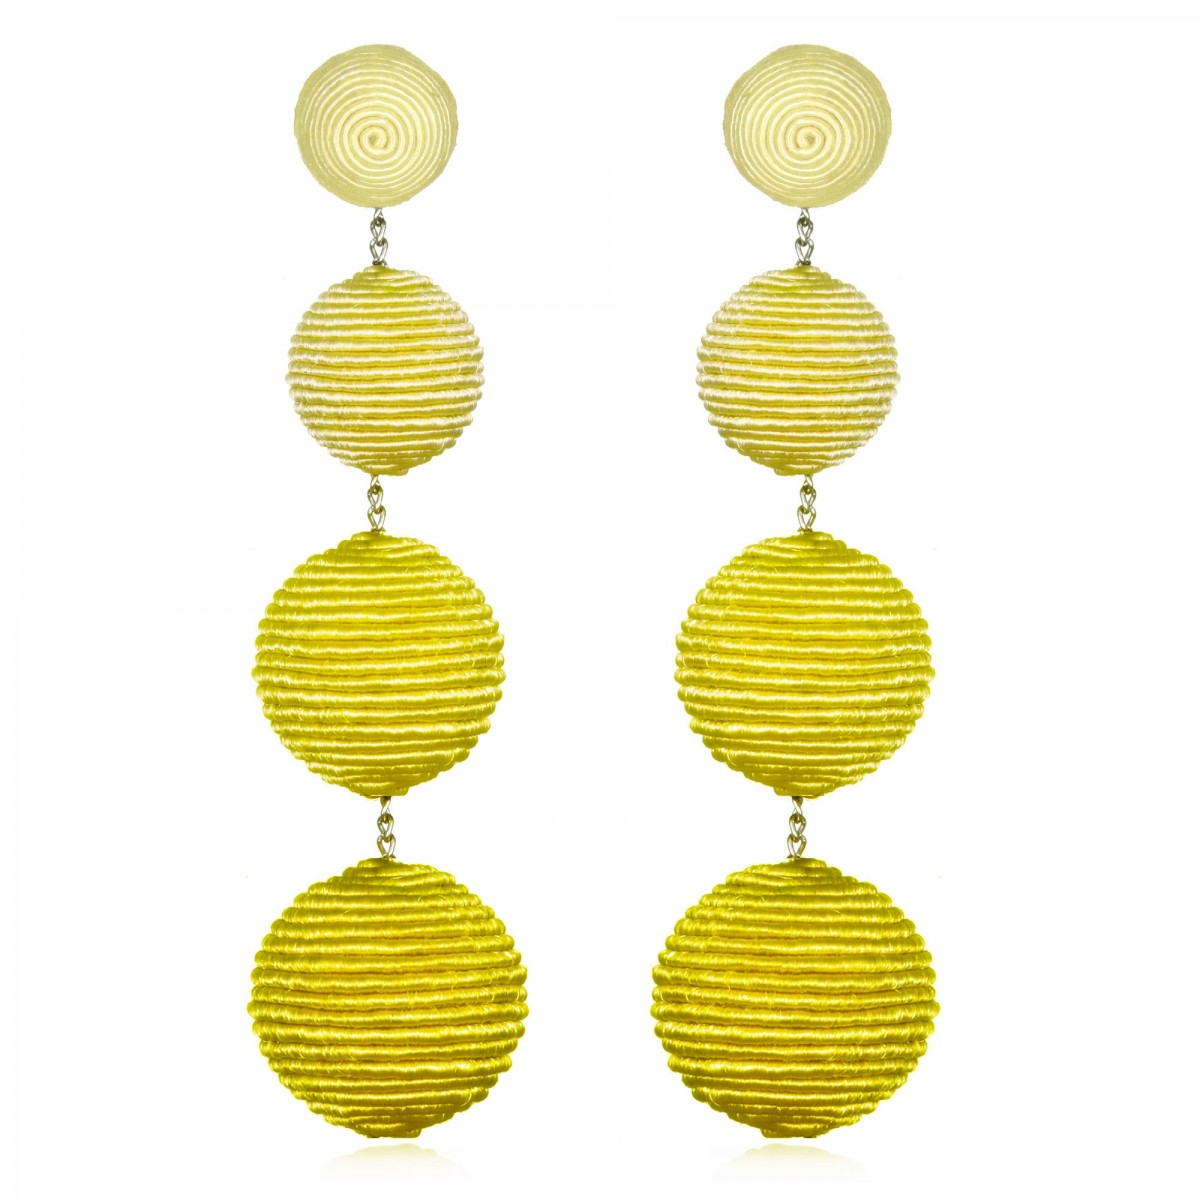 Yellow Ombre BonBon Earrings by SUZANNA DAI